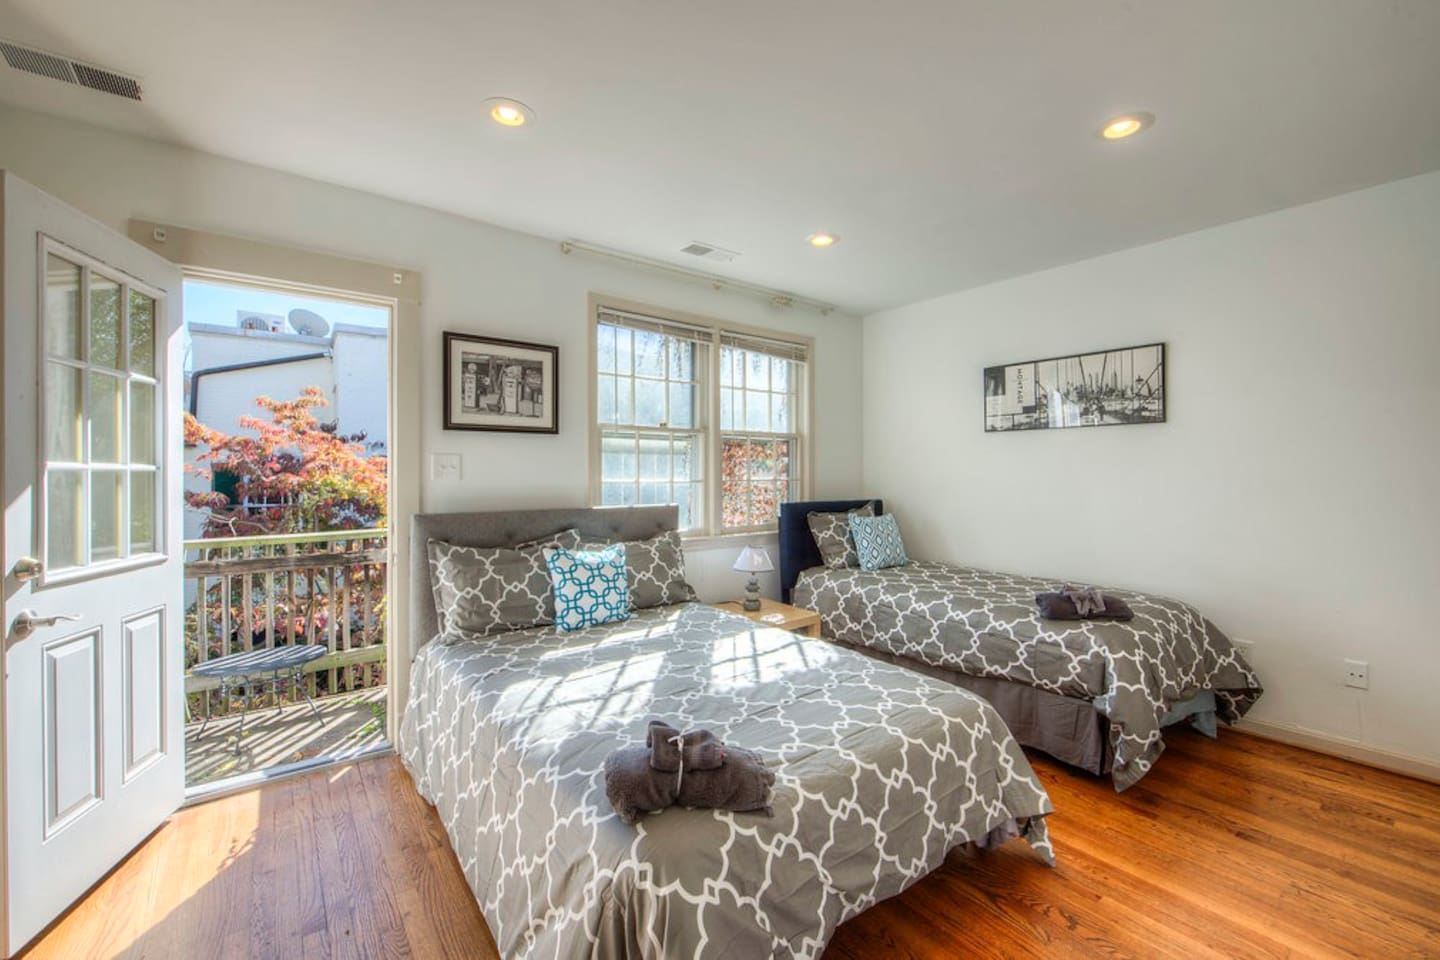 georgetown rowhouse 5 beds and garden patio houses for rent